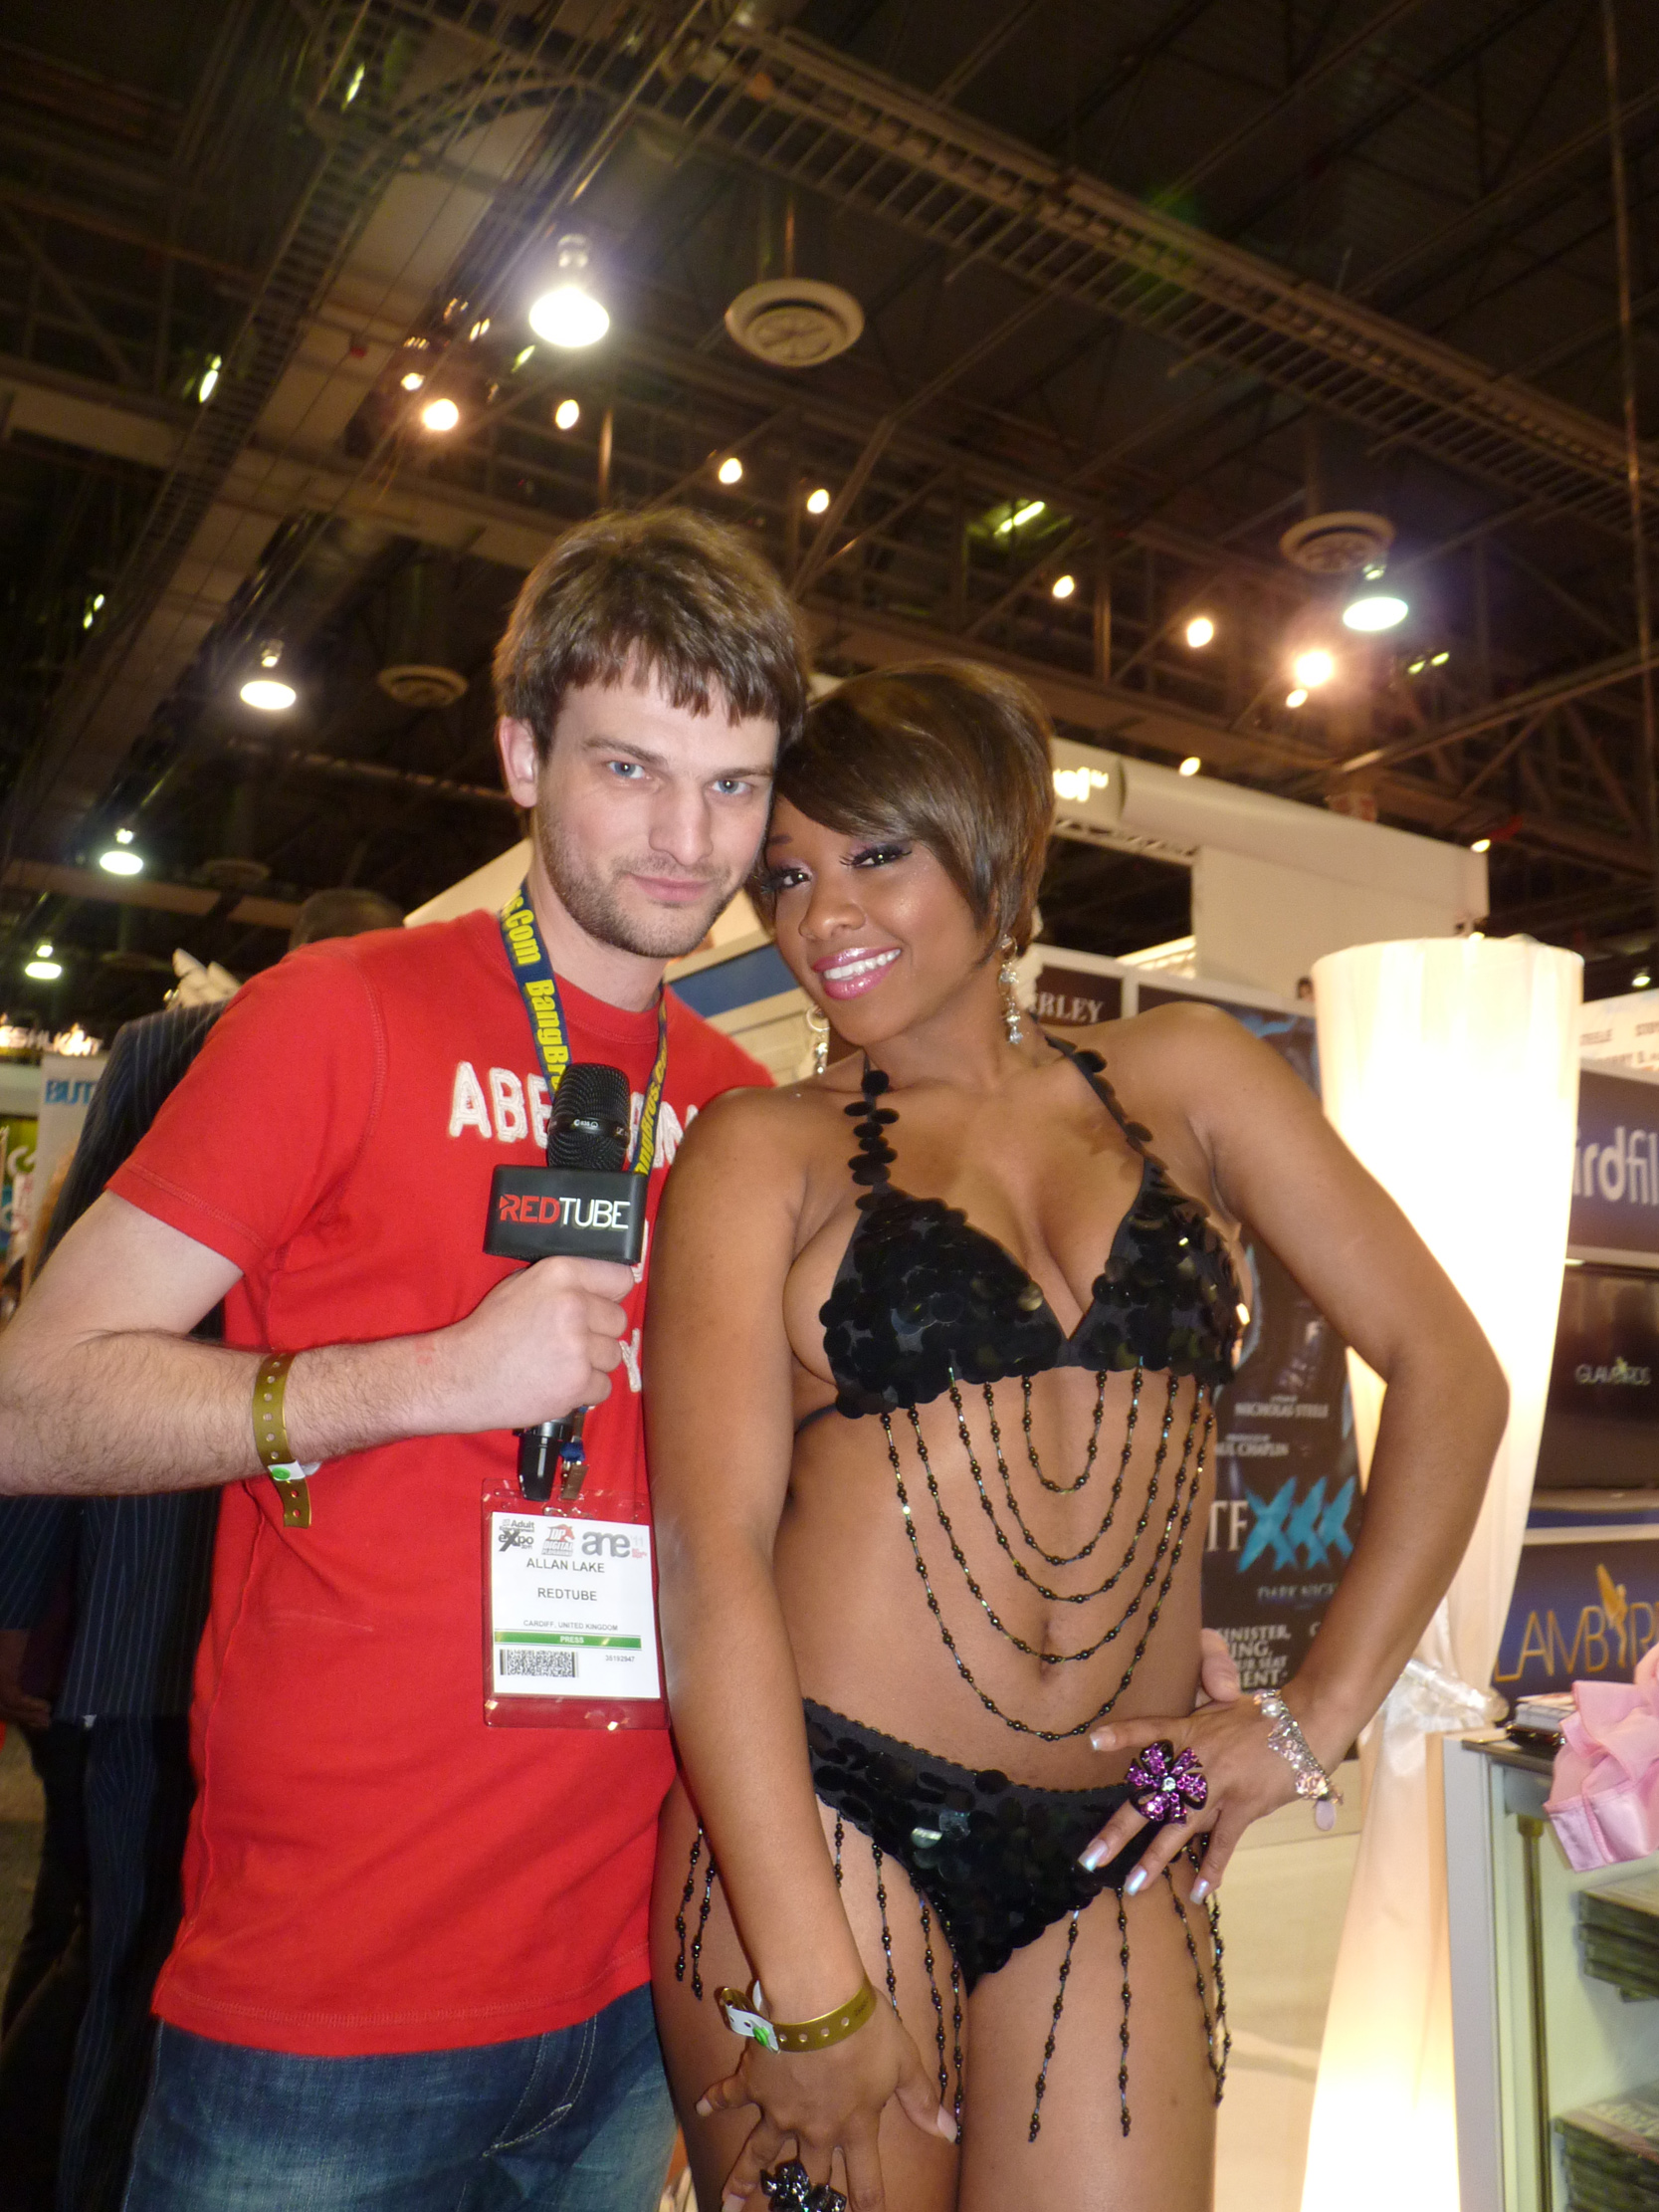 Pornstar Imani Rose at the AVN Expo